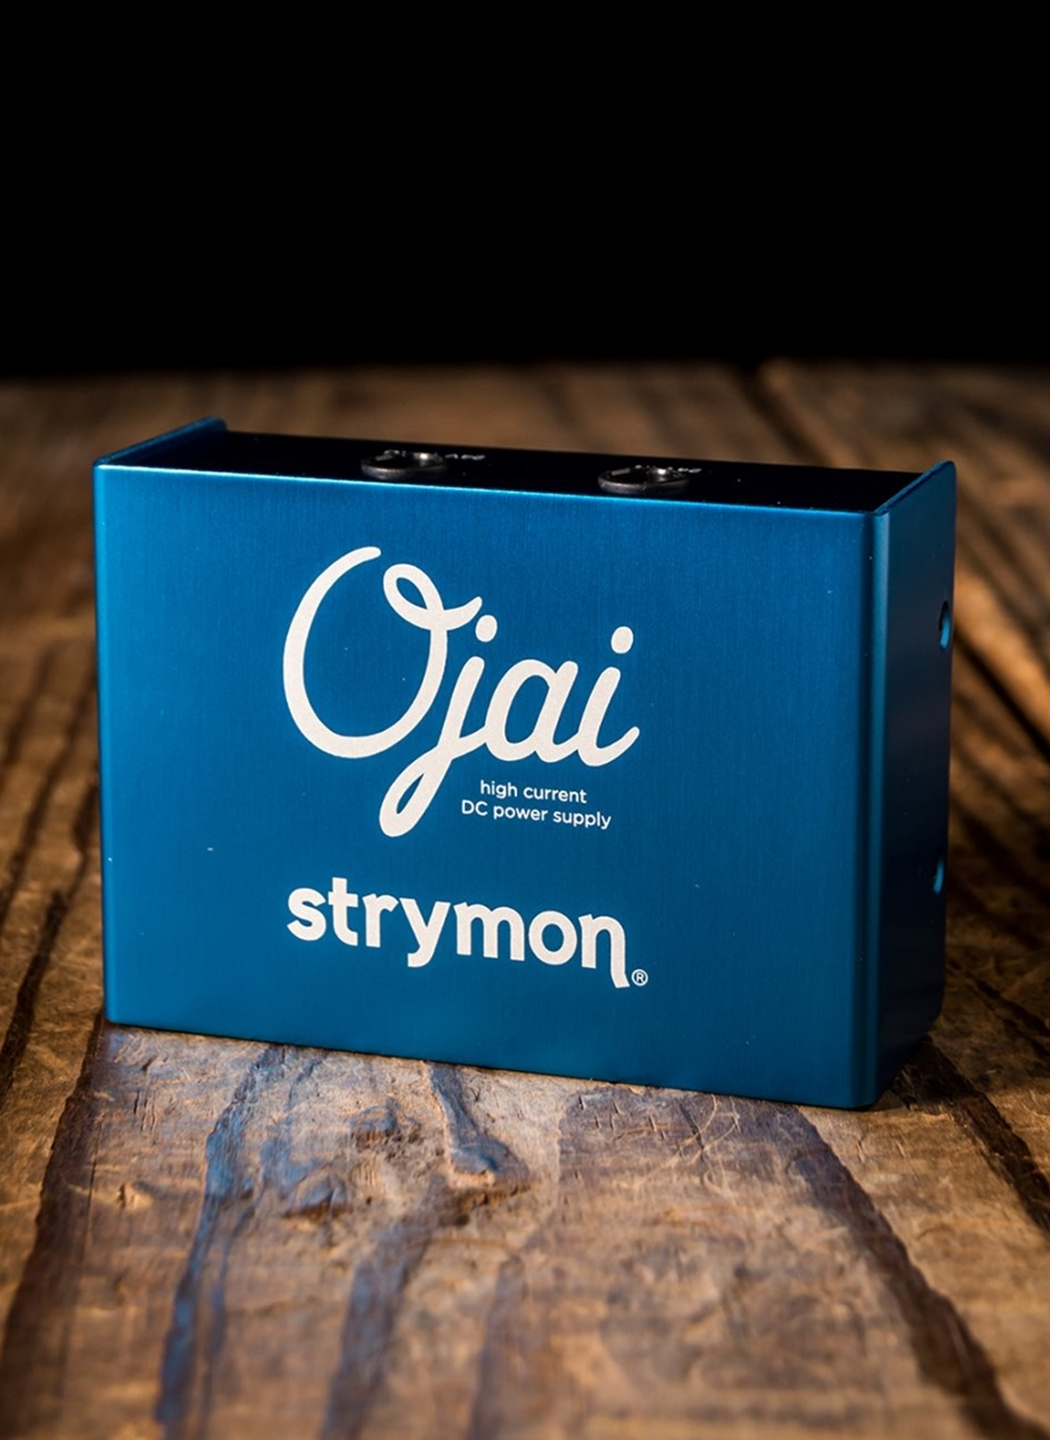 Strymon Ojai High Current Dc Pedal Power Supply Tap To Expand